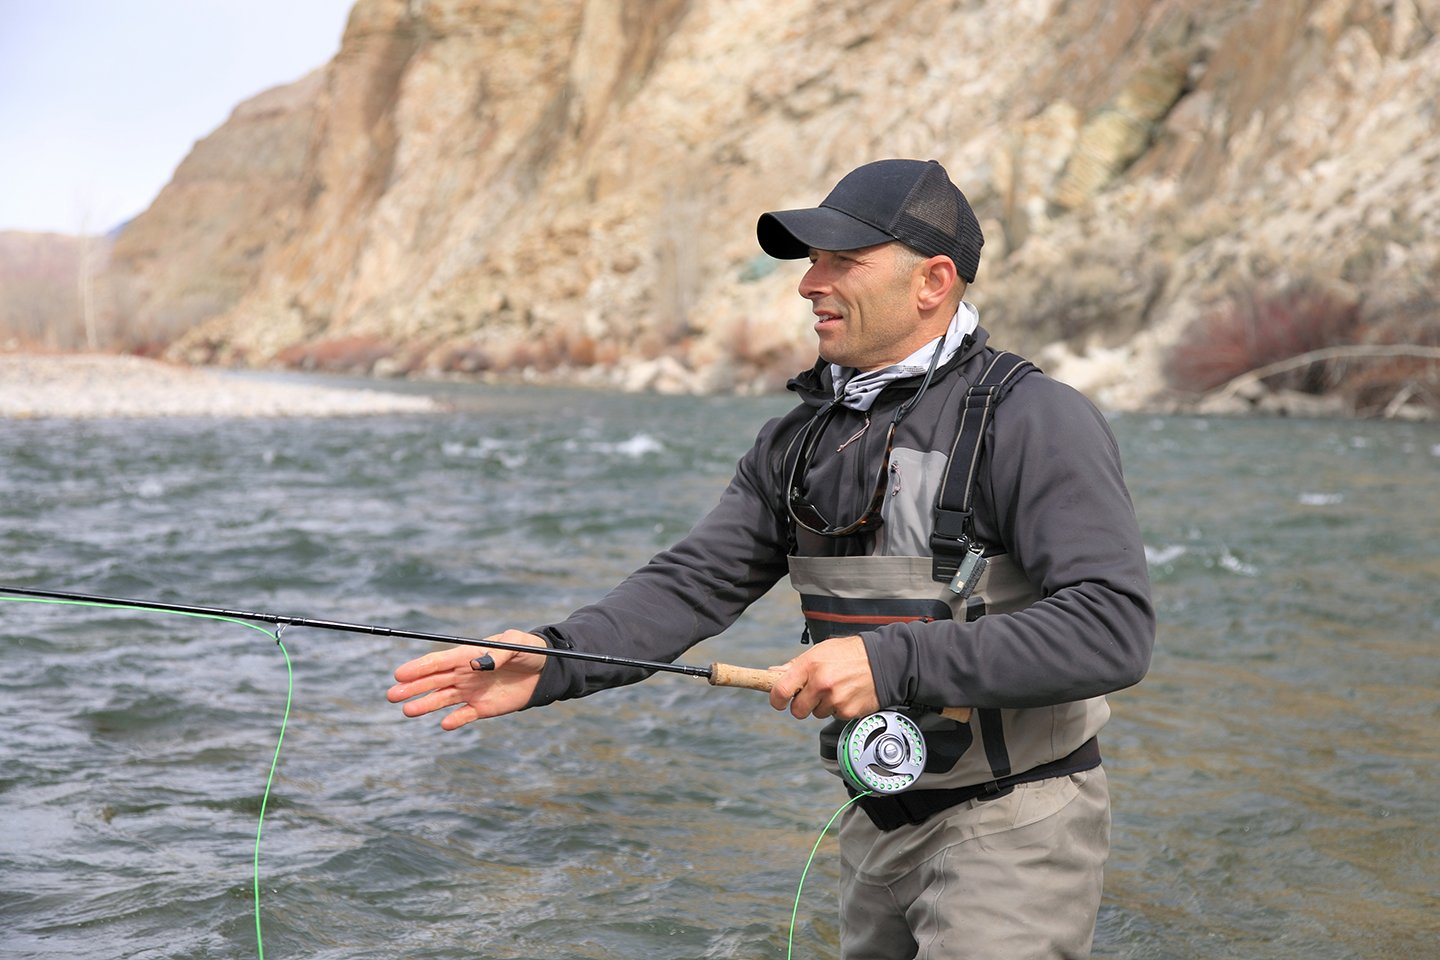 A fly fisherman focusing on his line while he tries to catch a fish